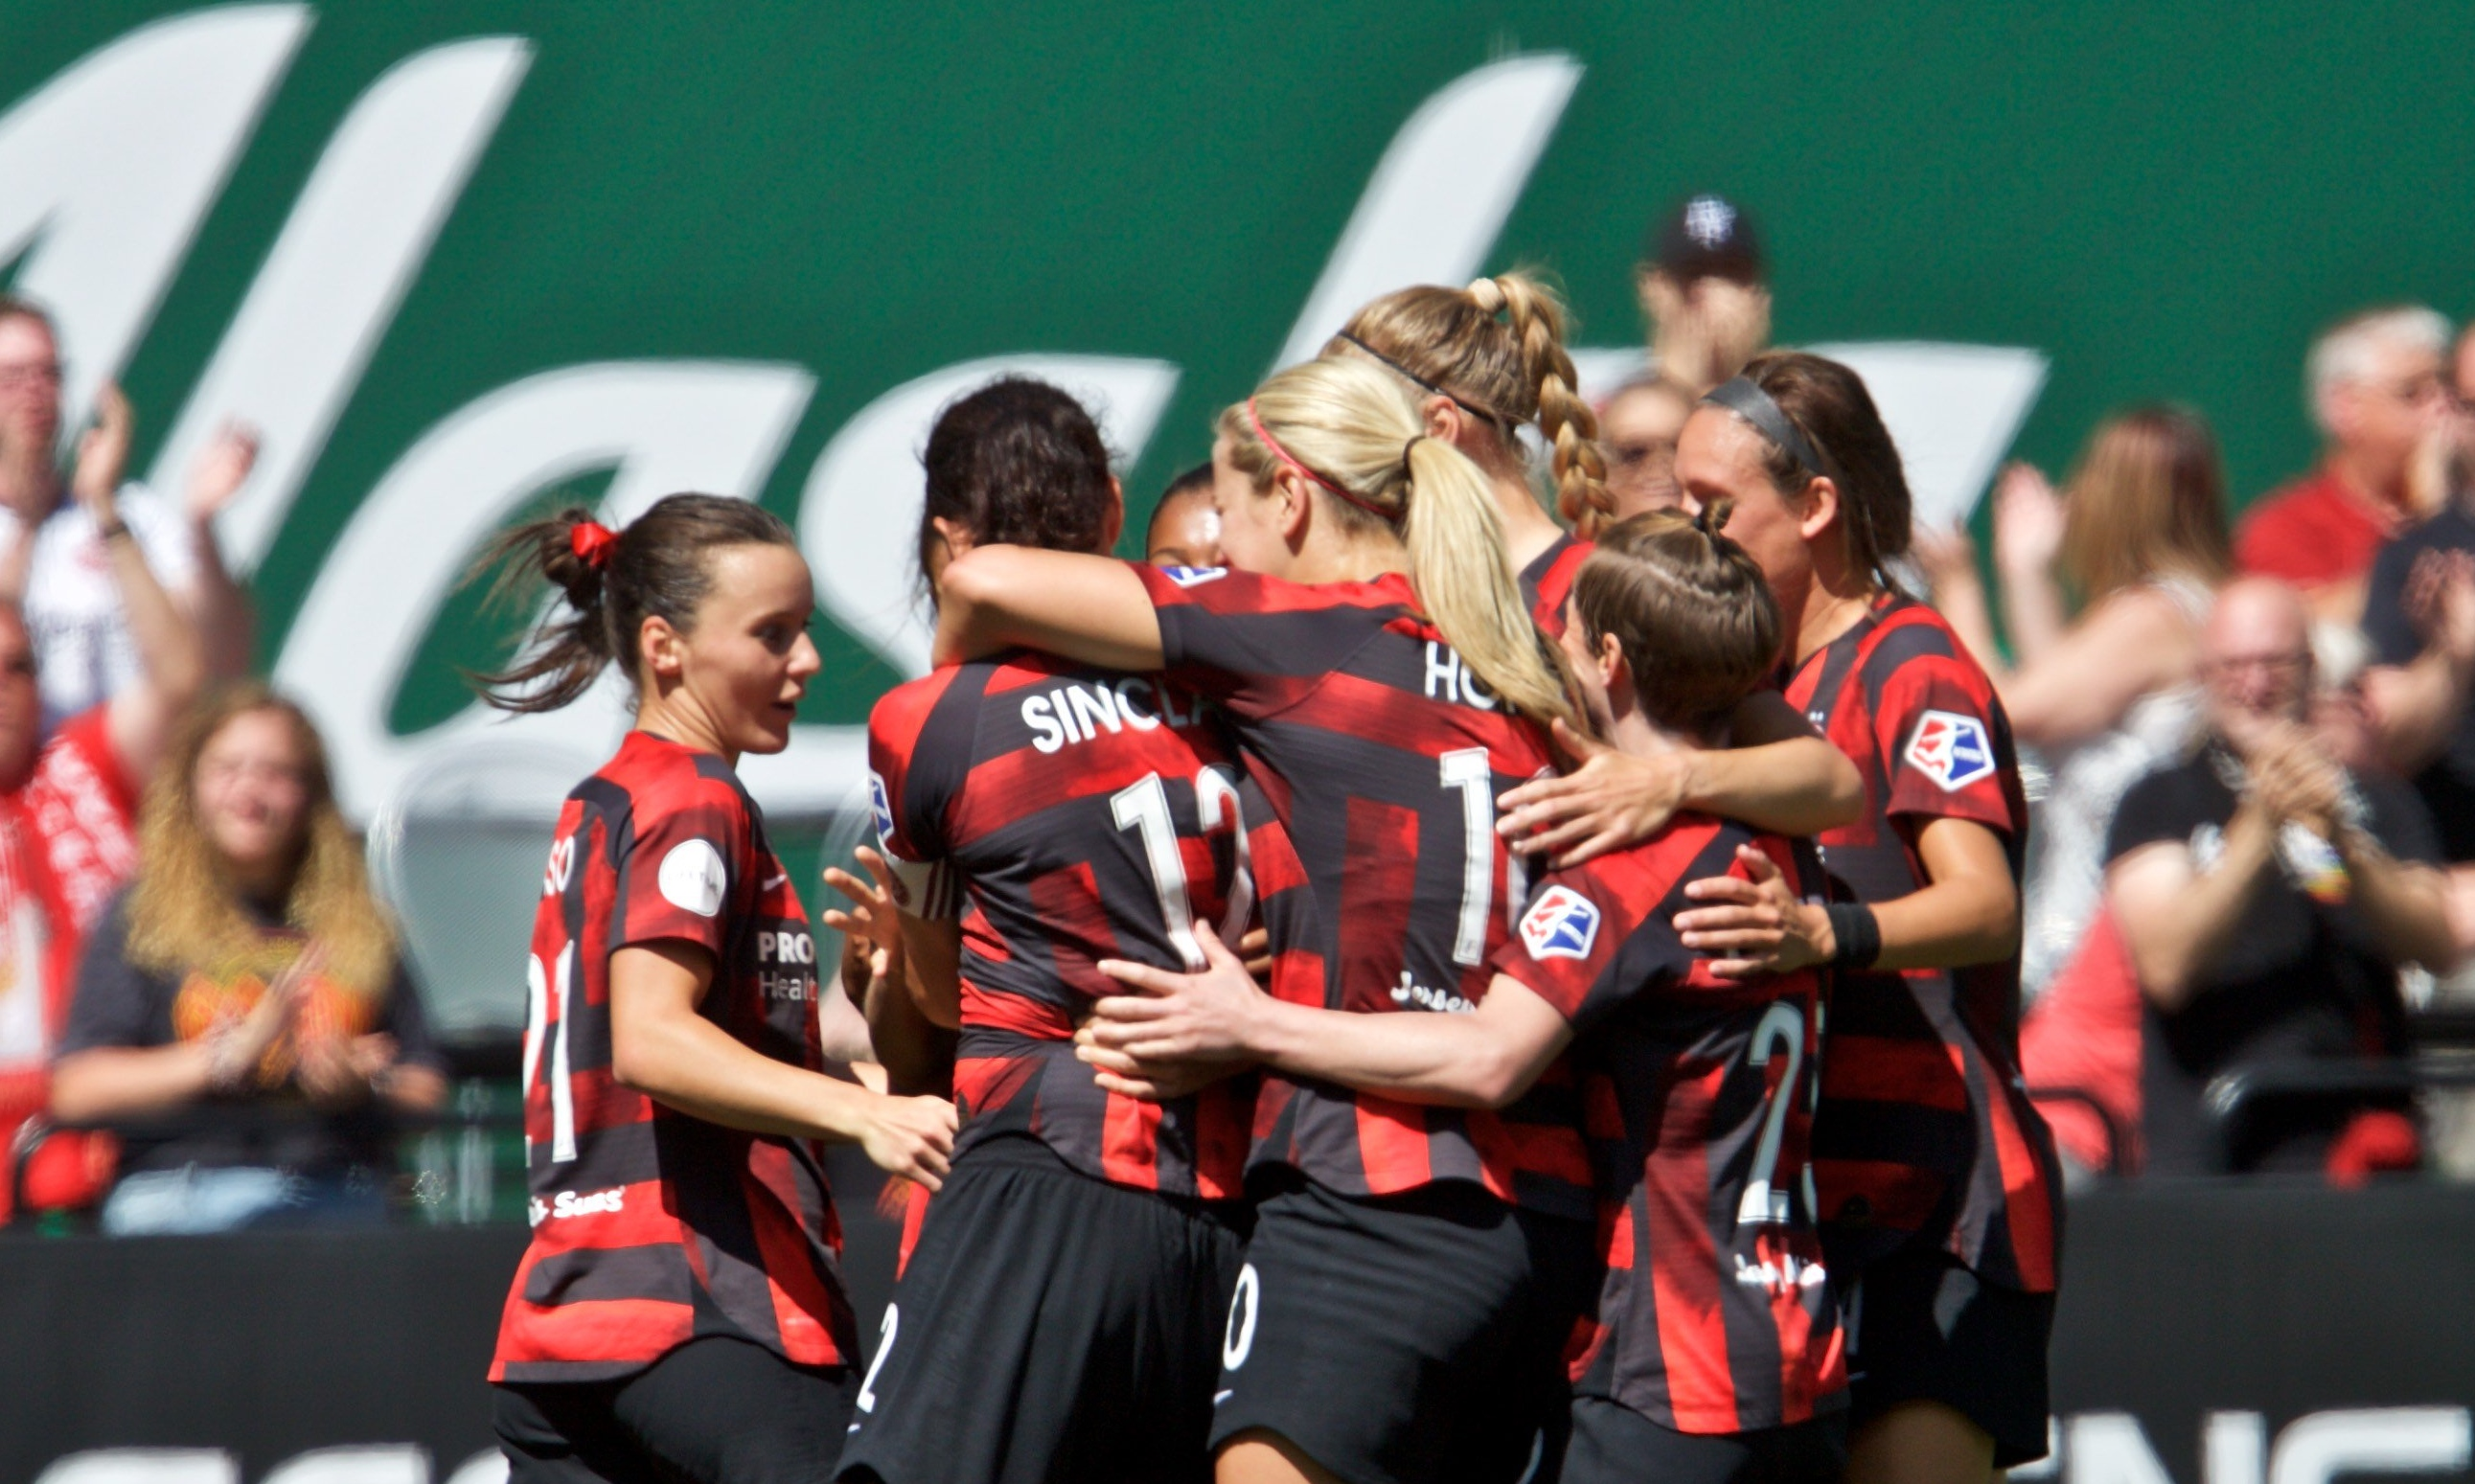 Hayley Raso was instrumental in Portland Thorns' big win over Chicago Red Stars this morning